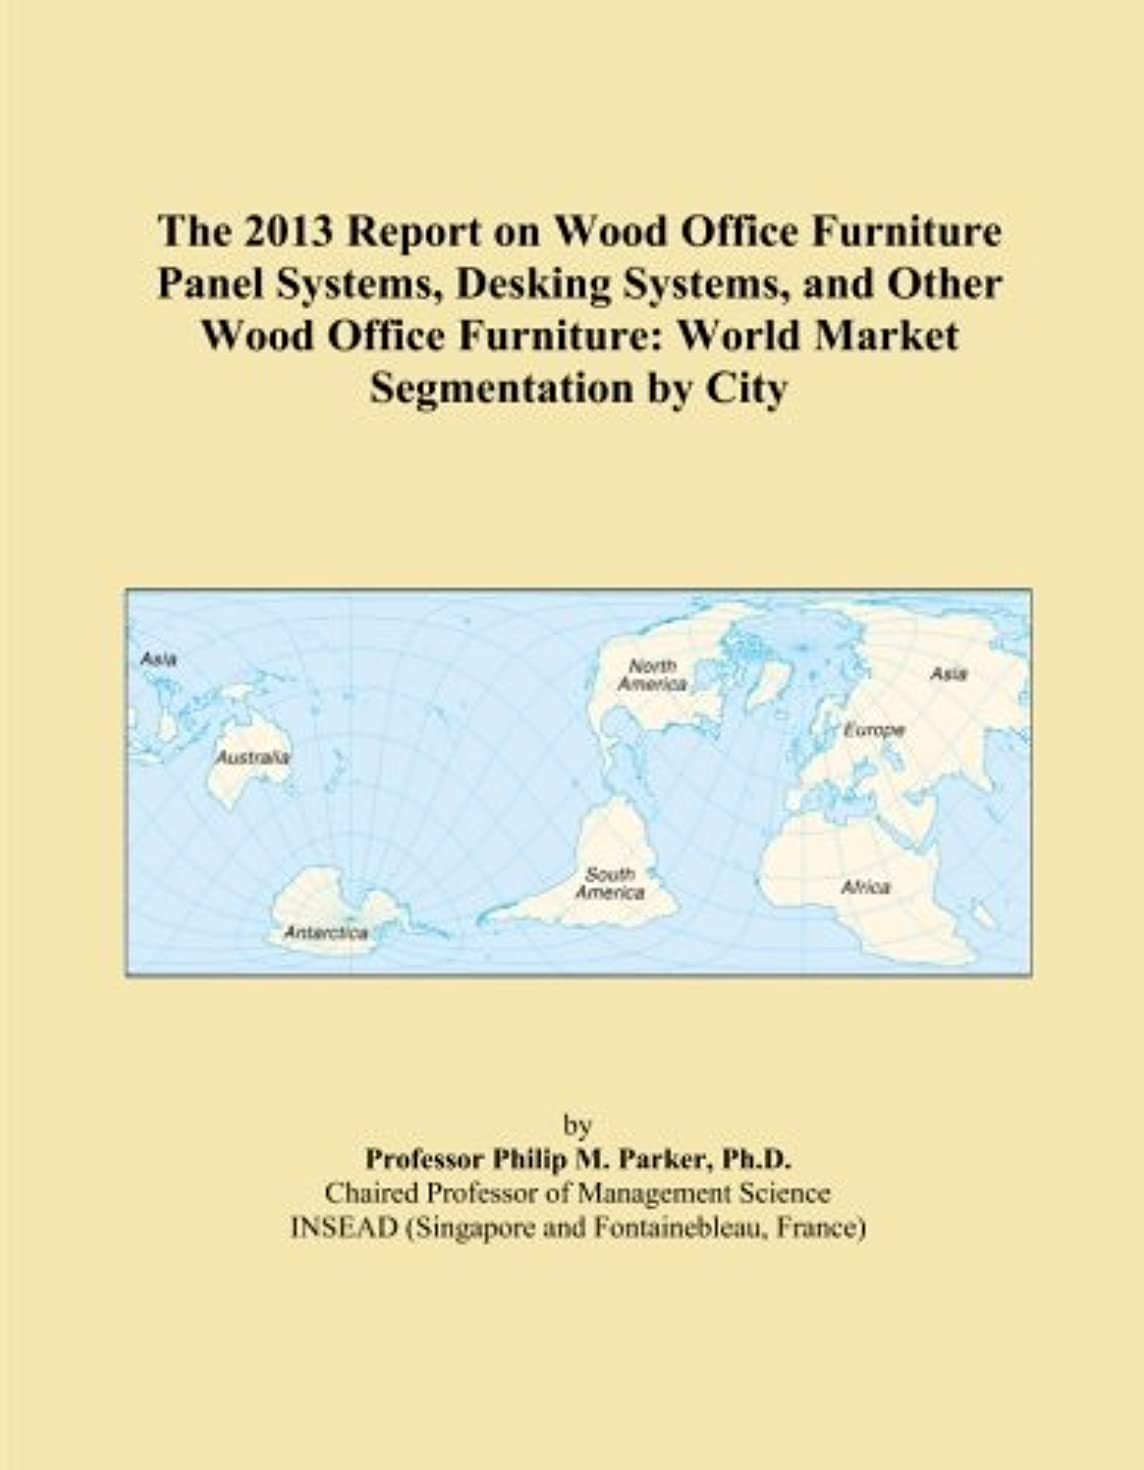 バリケード以降飾り羽The 2013 Report on Wood Office Furniture Panel Systems, Desking Systems, and Other Wood Office Furniture: World Market Segmentation by City